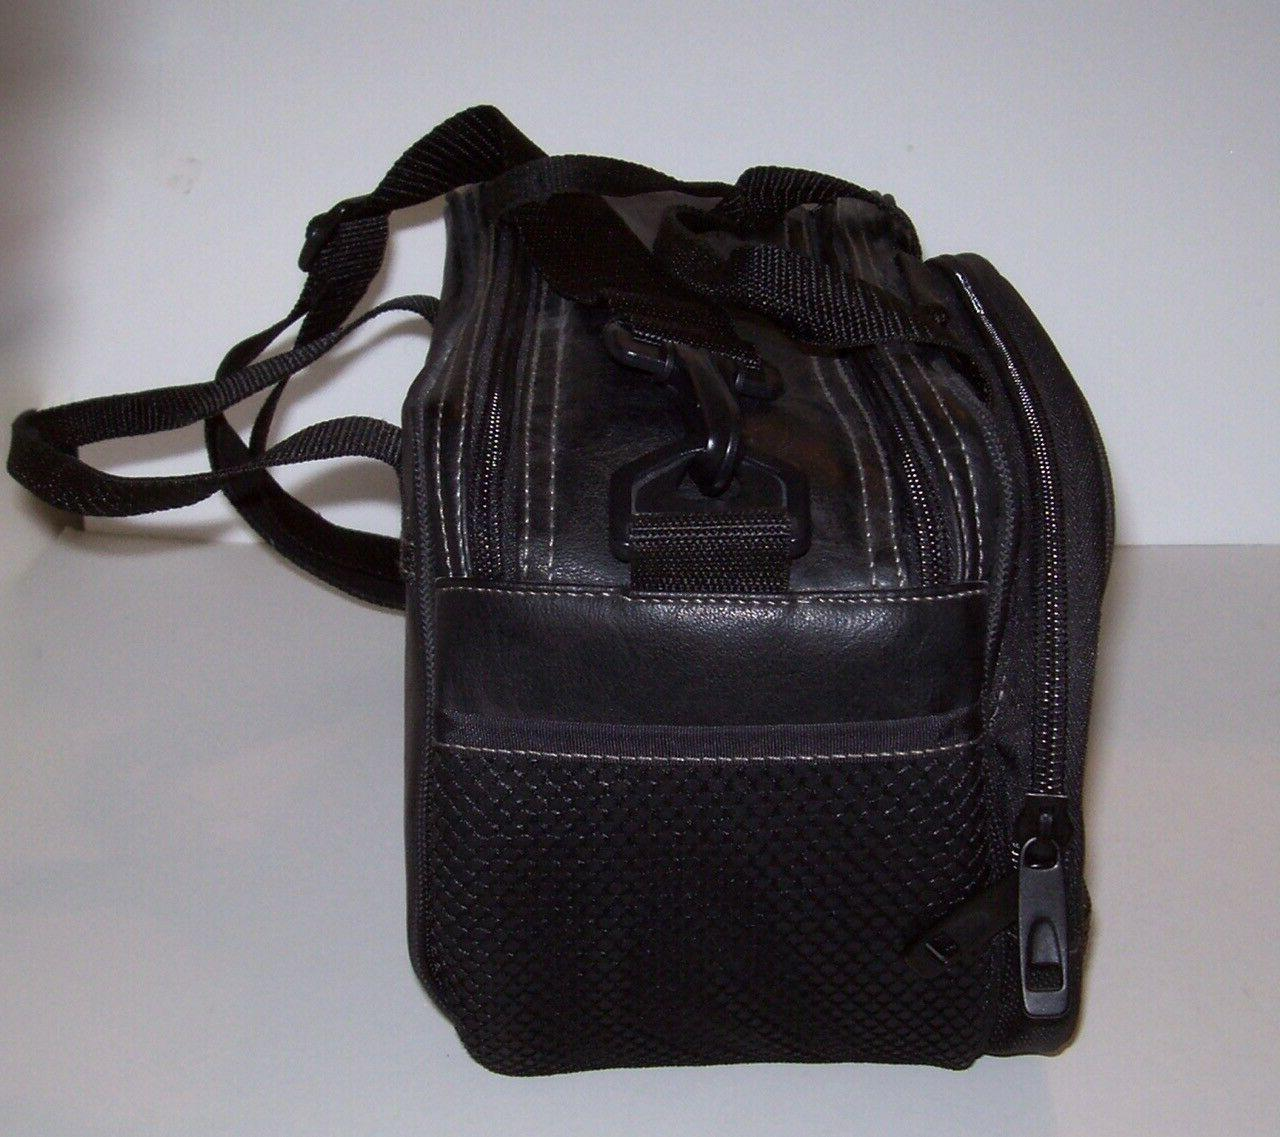 """Case Camera Bag Camcorder, etc. - NEW"